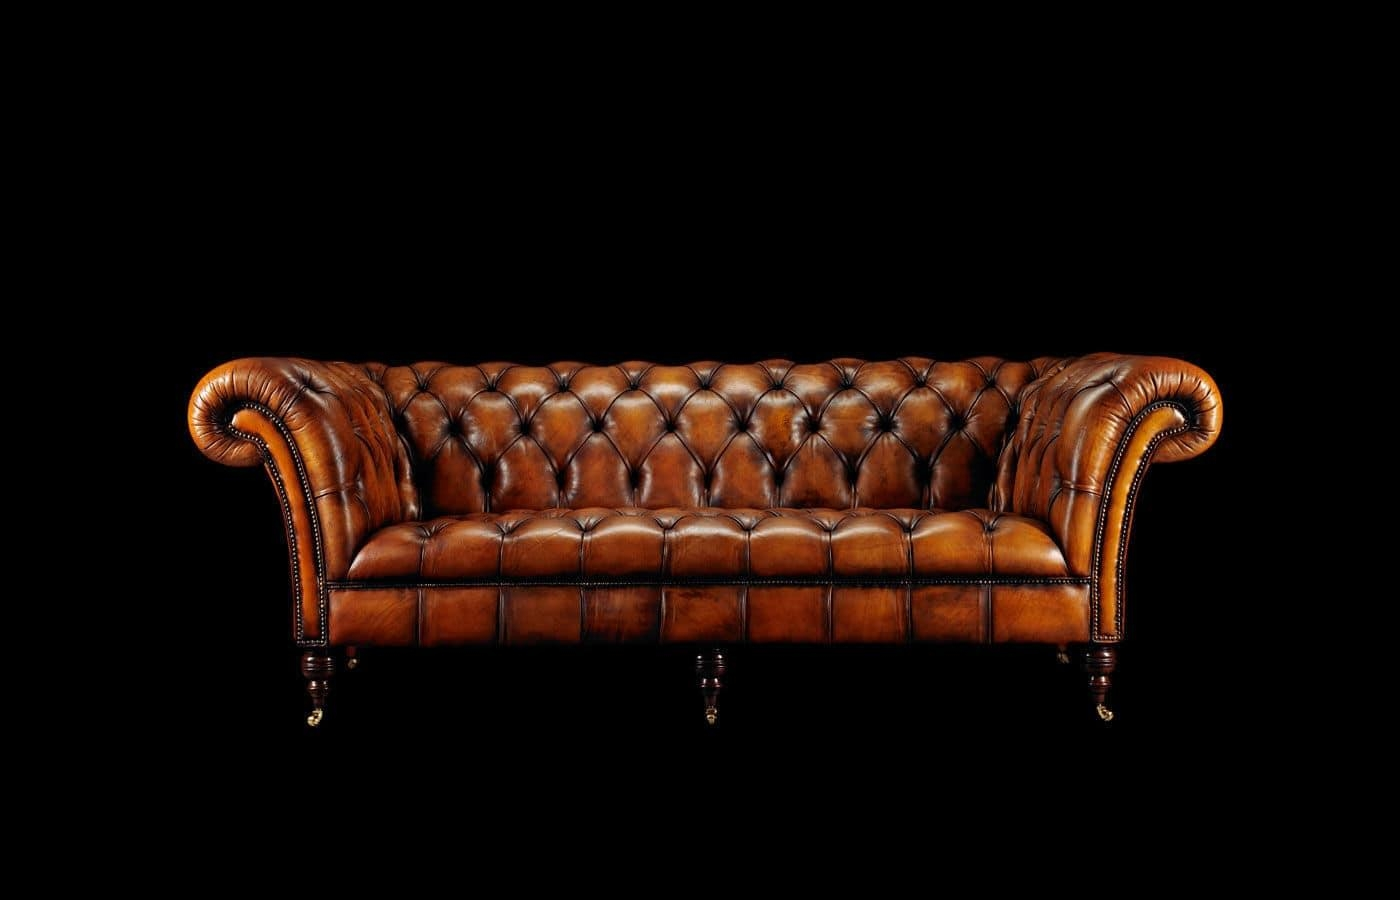 Chesterfield Sofa / Leather / 2 Seater / On Casters – Phillip Pertaining To Casters Sofas (View 4 of 20)